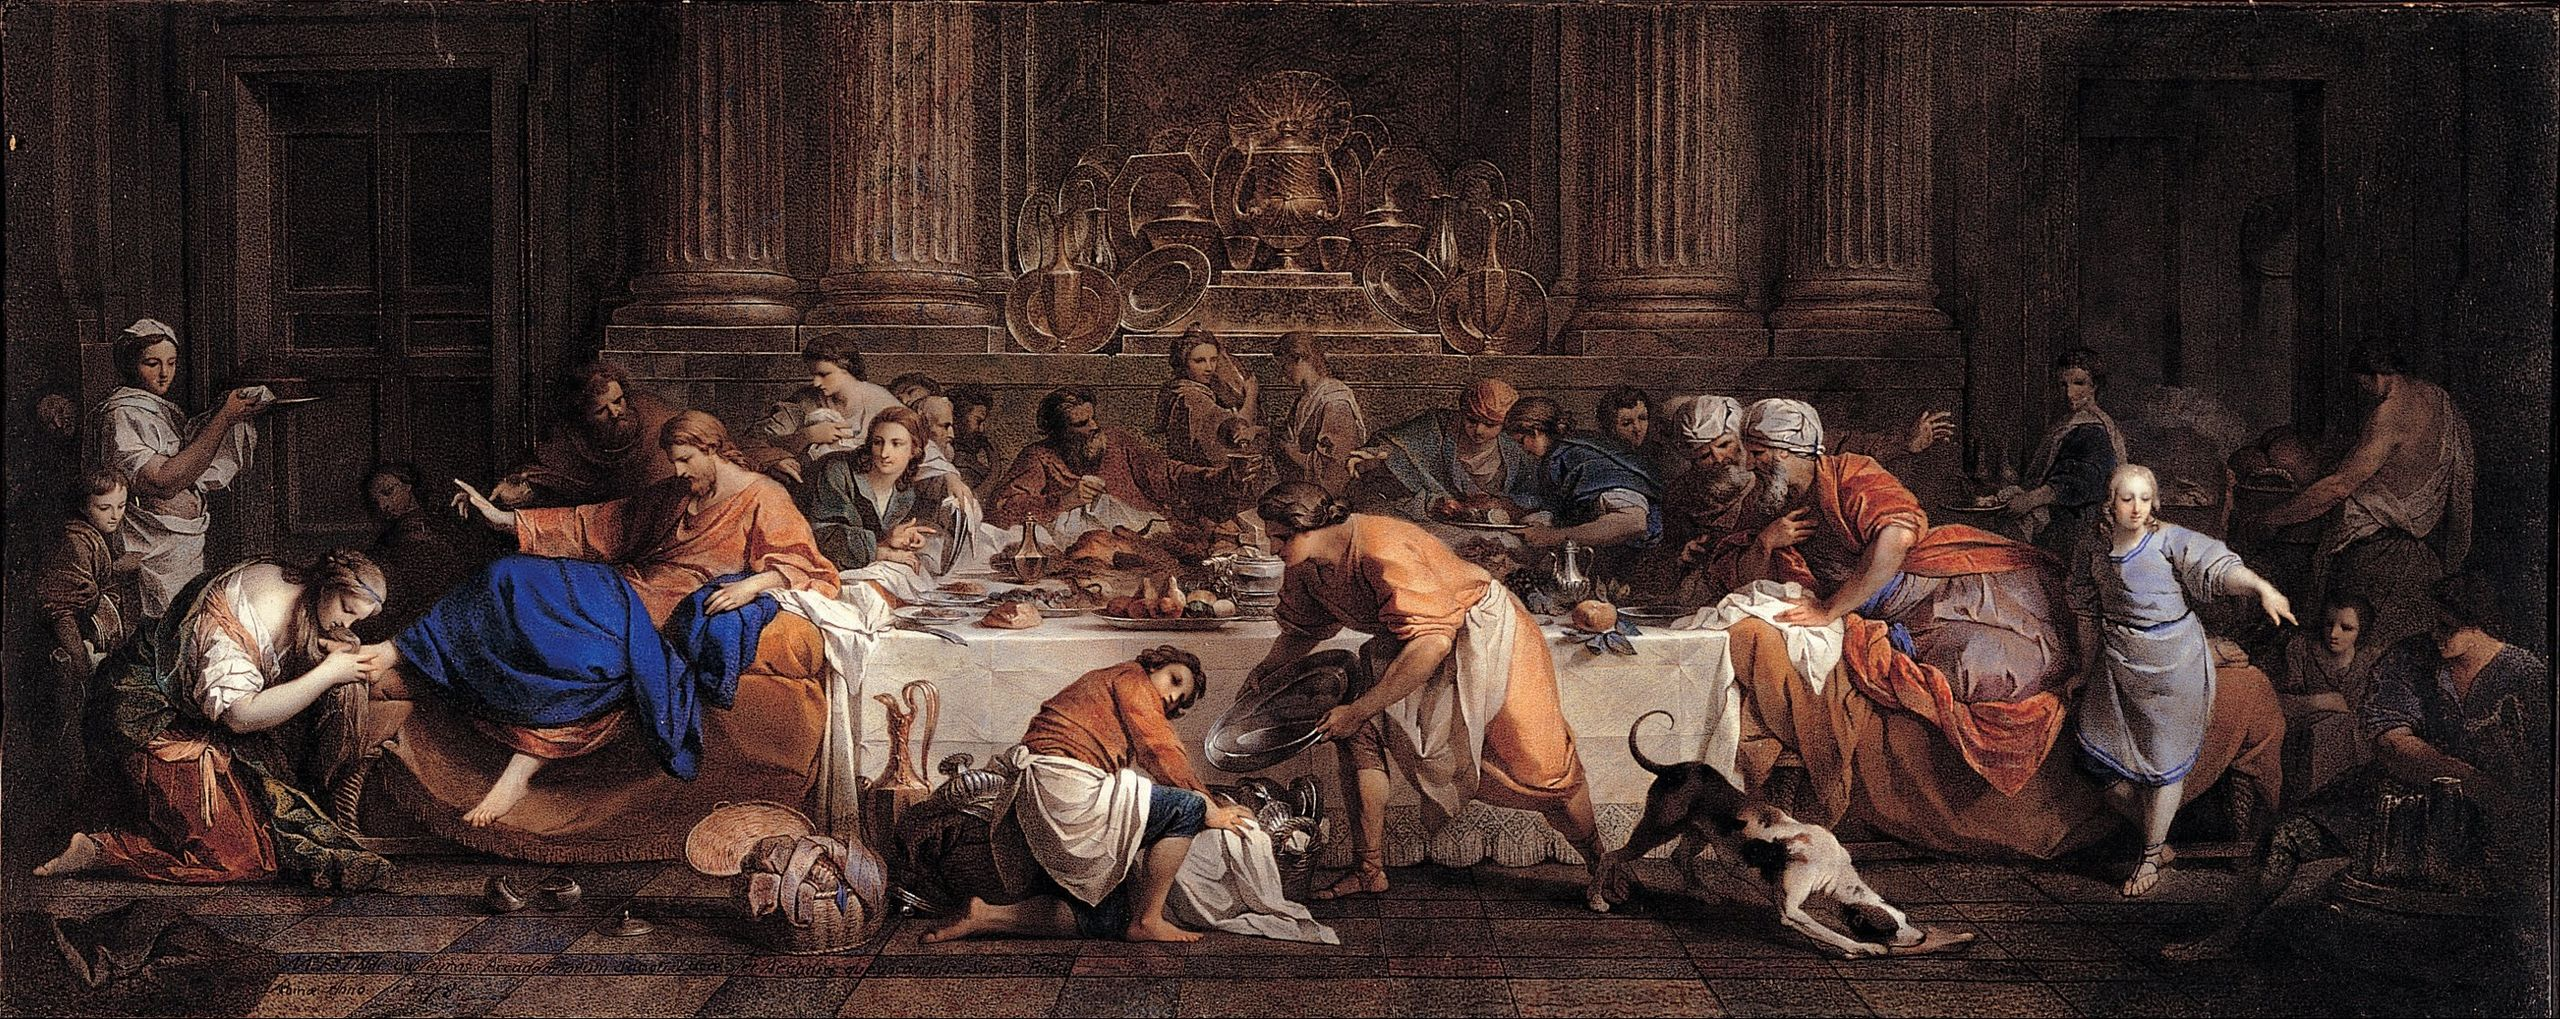 maria_felice_tibaldi_subleyras_-_dinner_at_the_house_of_the_pharisee_-_google_art_project